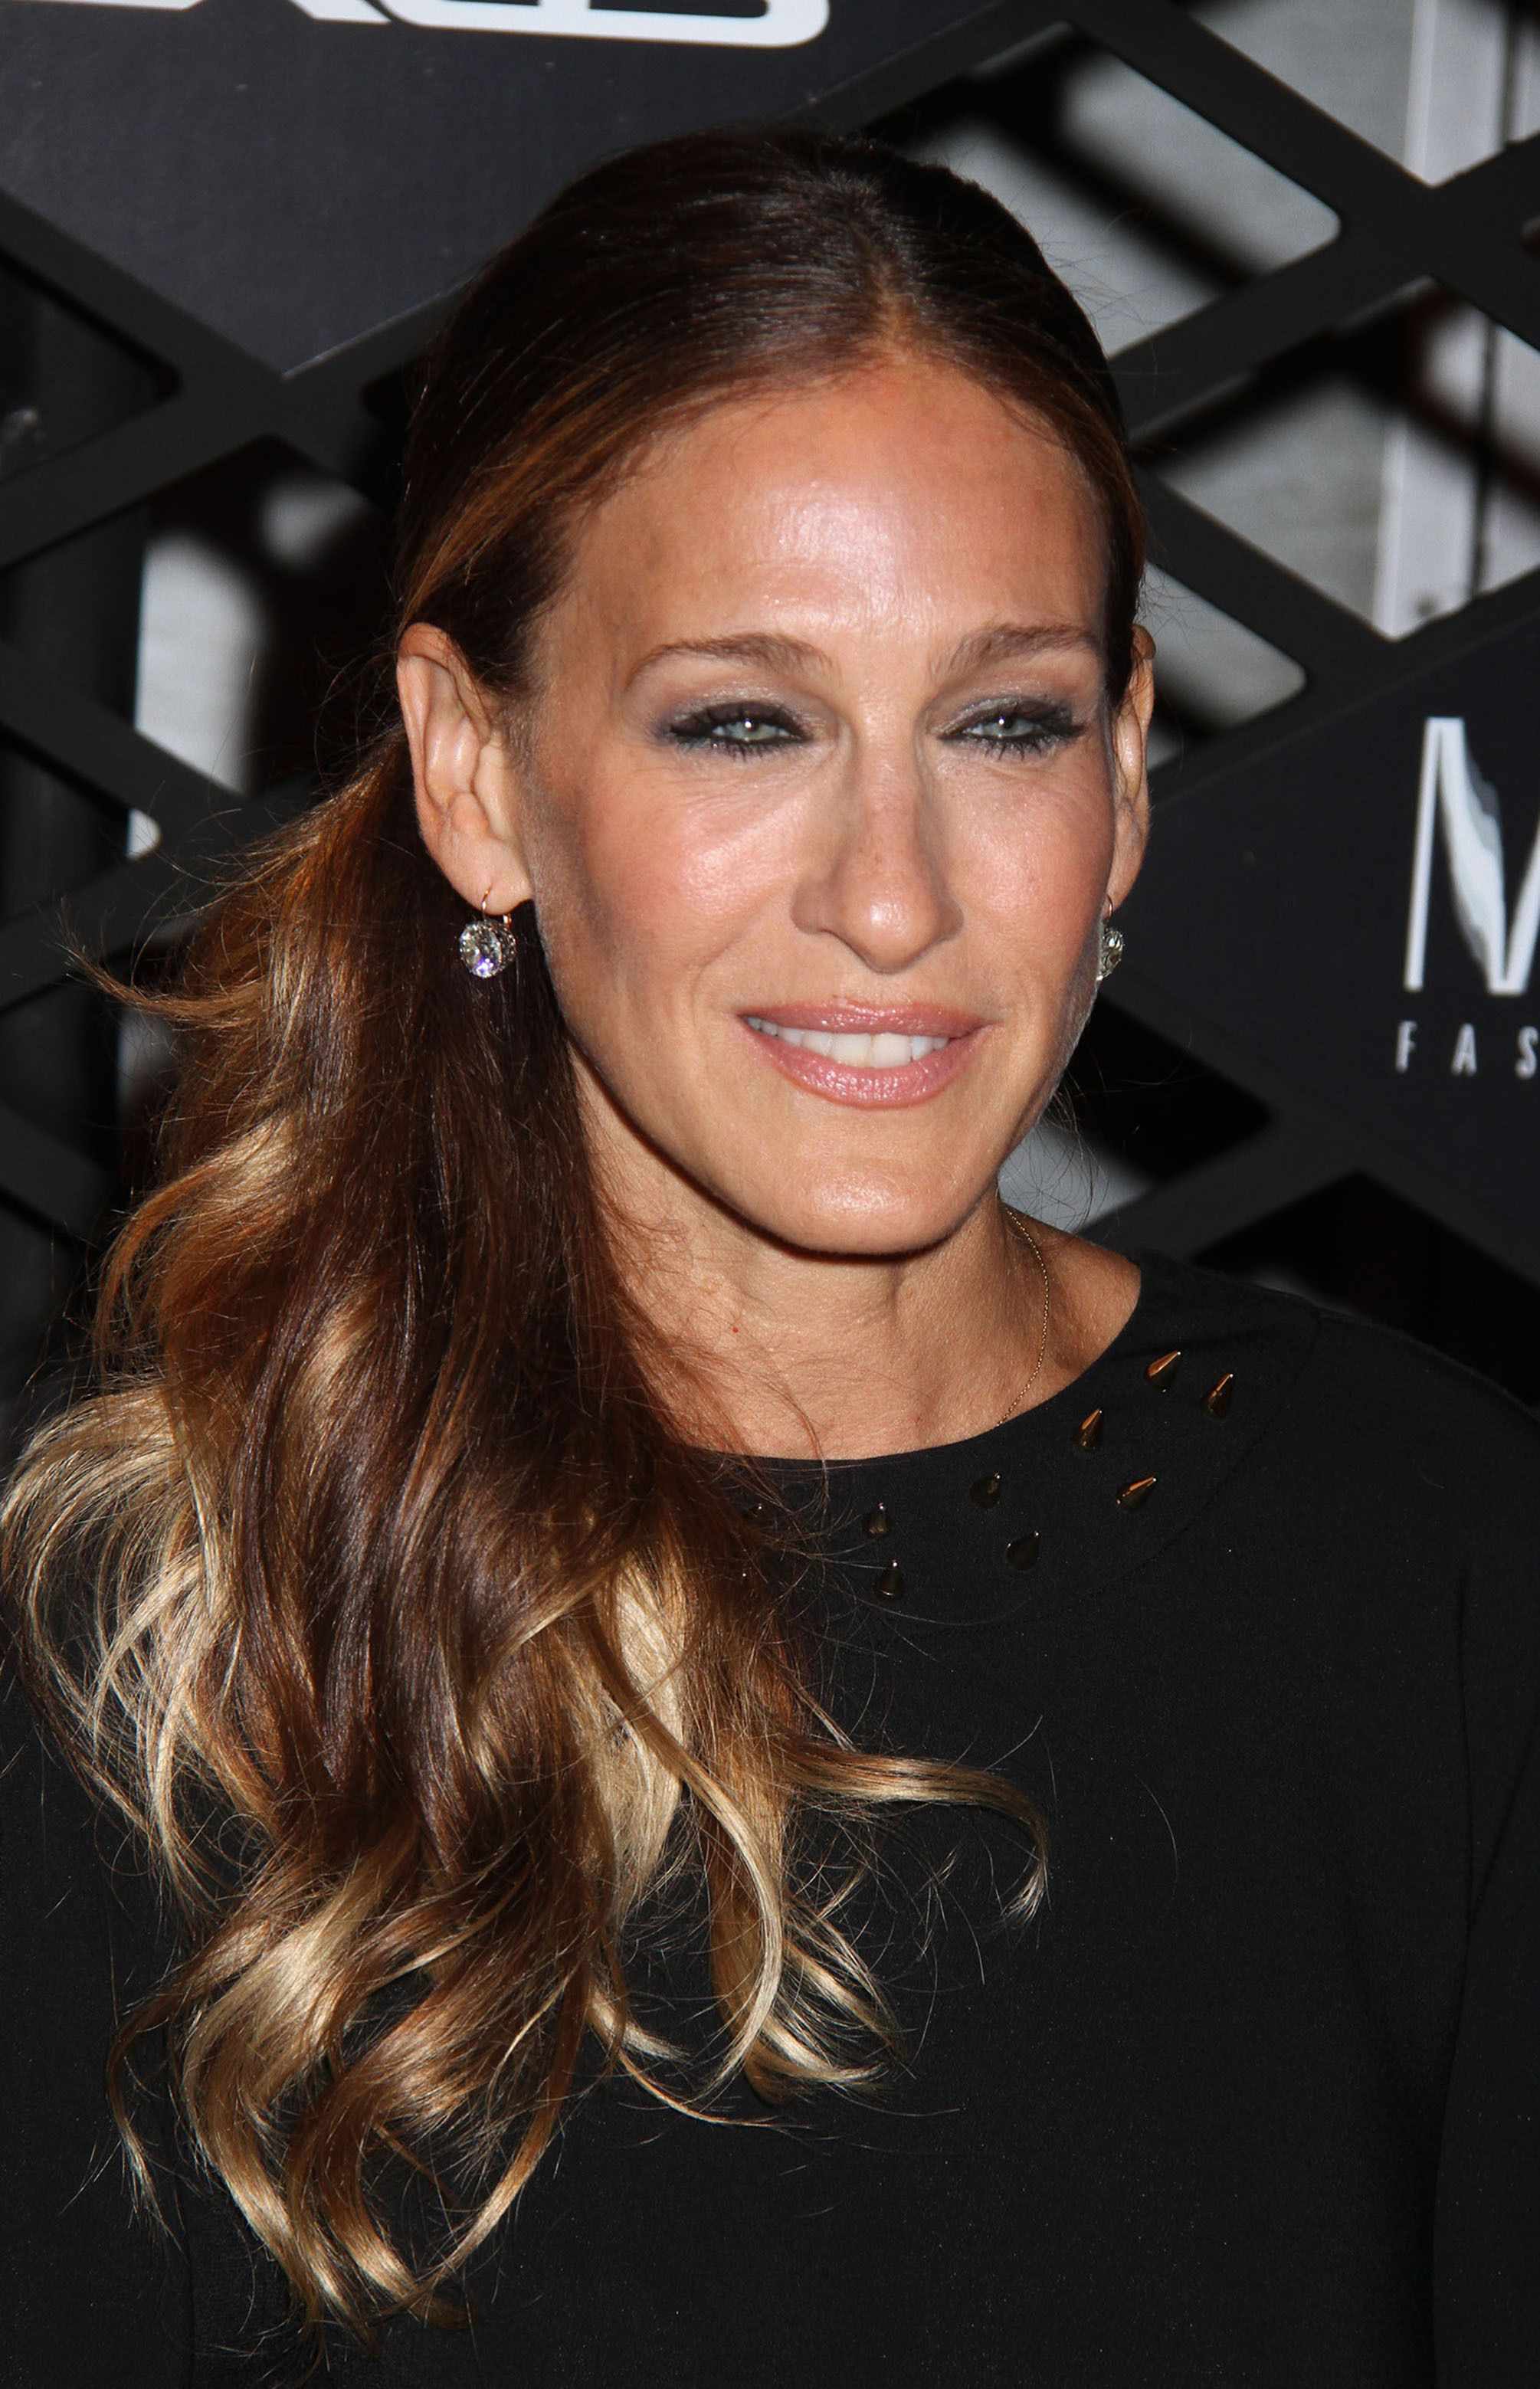 Sarah Jessica Parker S Best Curly Hair Moments Through The Years Hot Hair Styles Curly Hair Styles Hair Styles